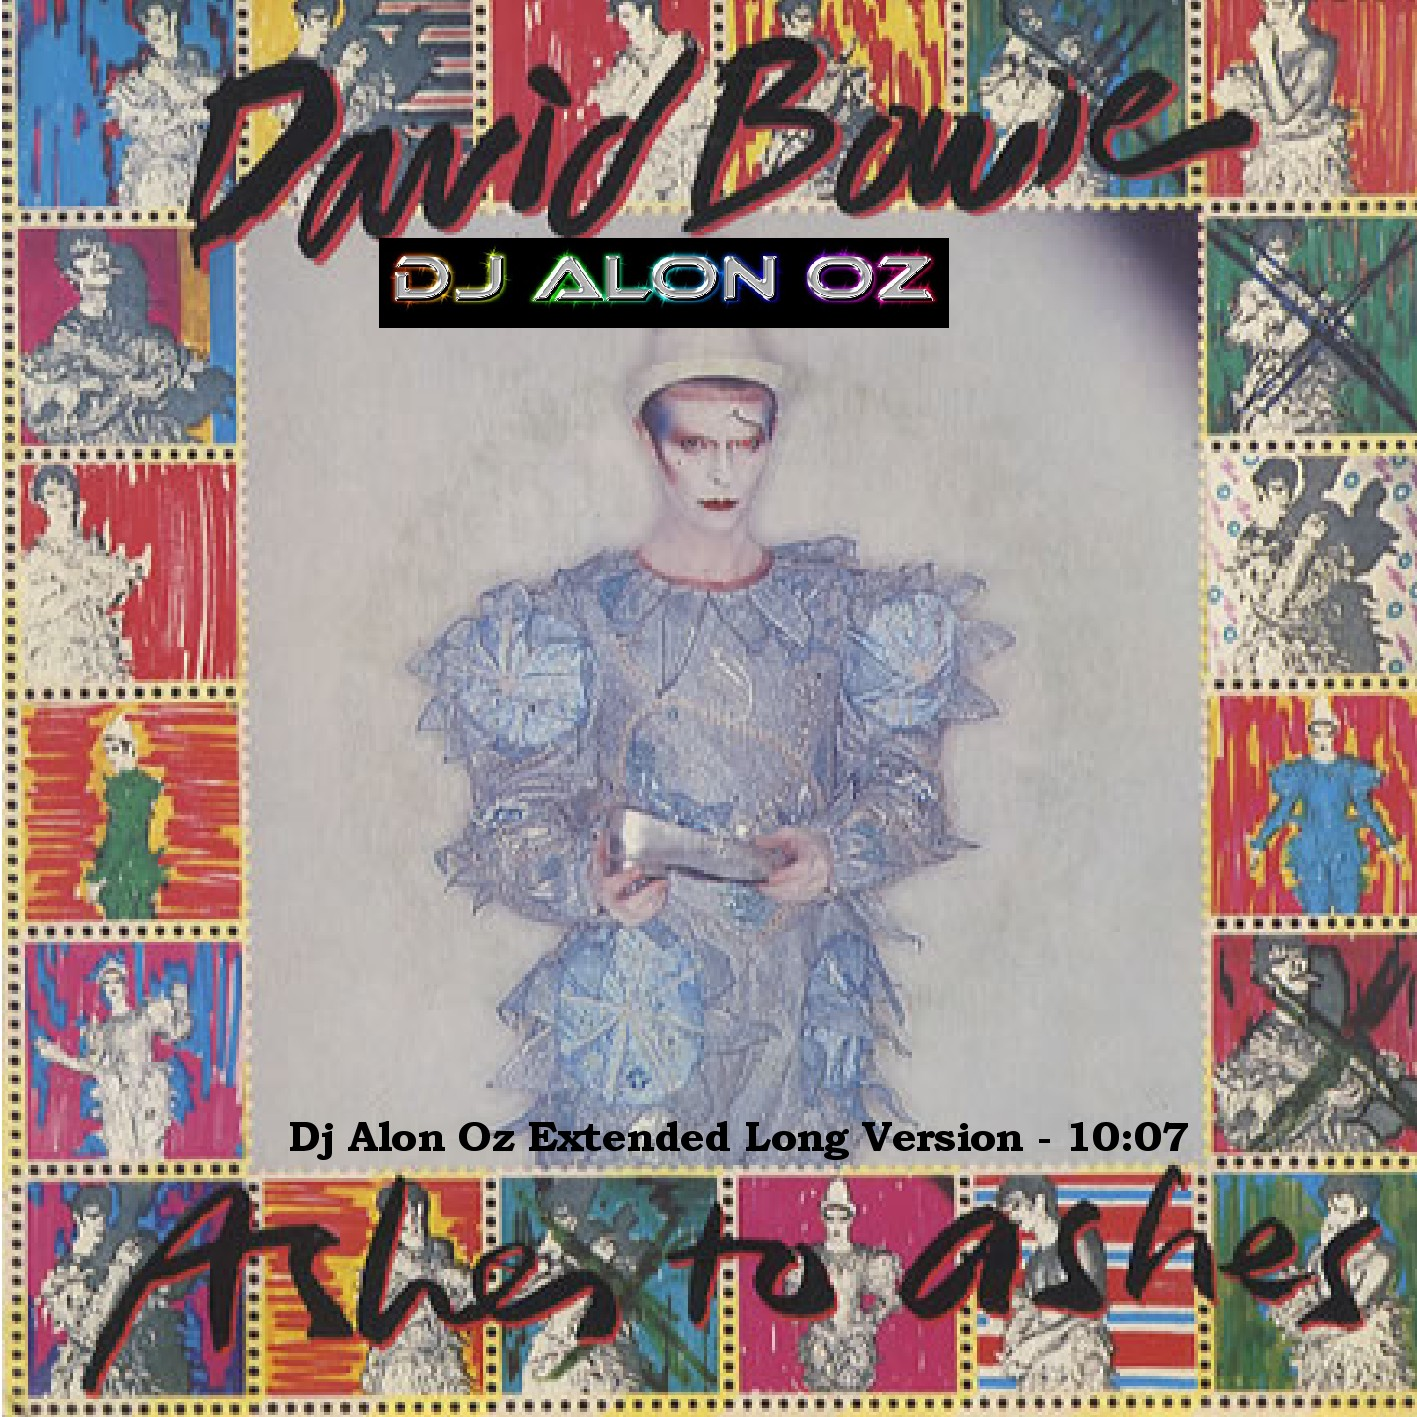 David Bowie – ashes to ashes – Dj Alon Oz Extended Long